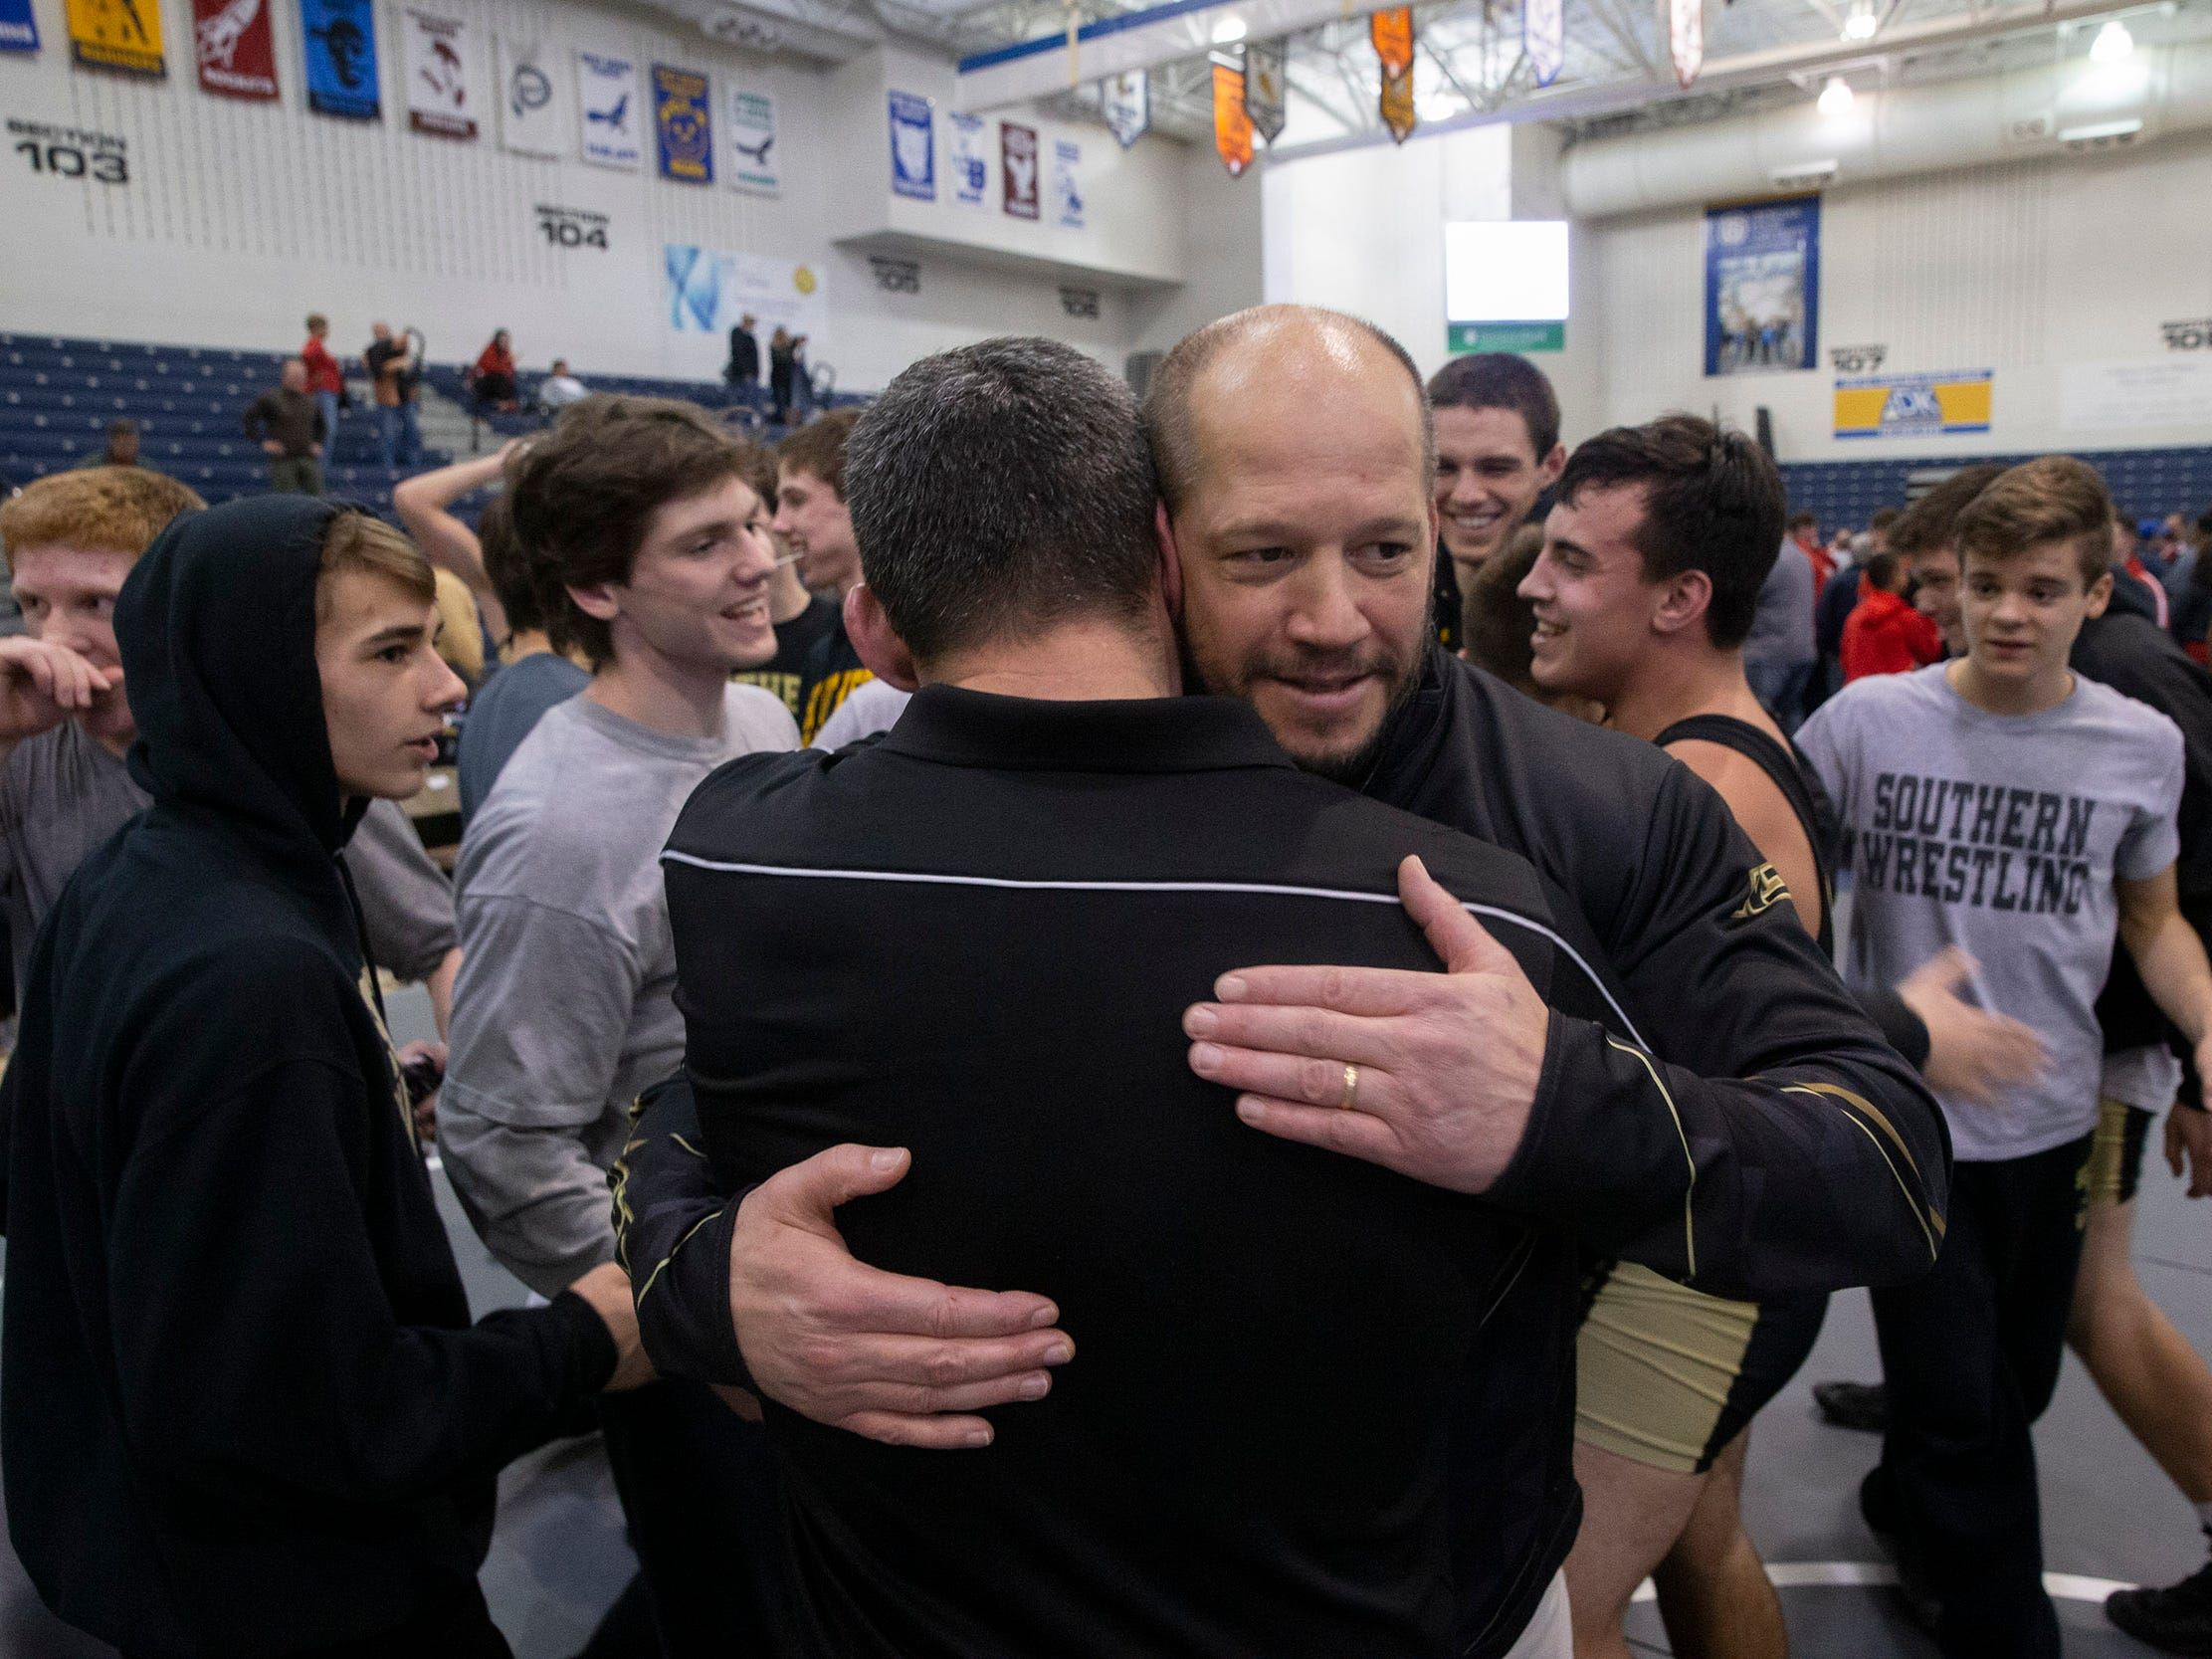 Southern Coach John Stout hugs one of his coaches after their win. Southern Regional defeats  Hunterdon Central 34-27 in NJSIAA Team Wrestling Group V Final in Toms River NJ on February 10 , 2019.